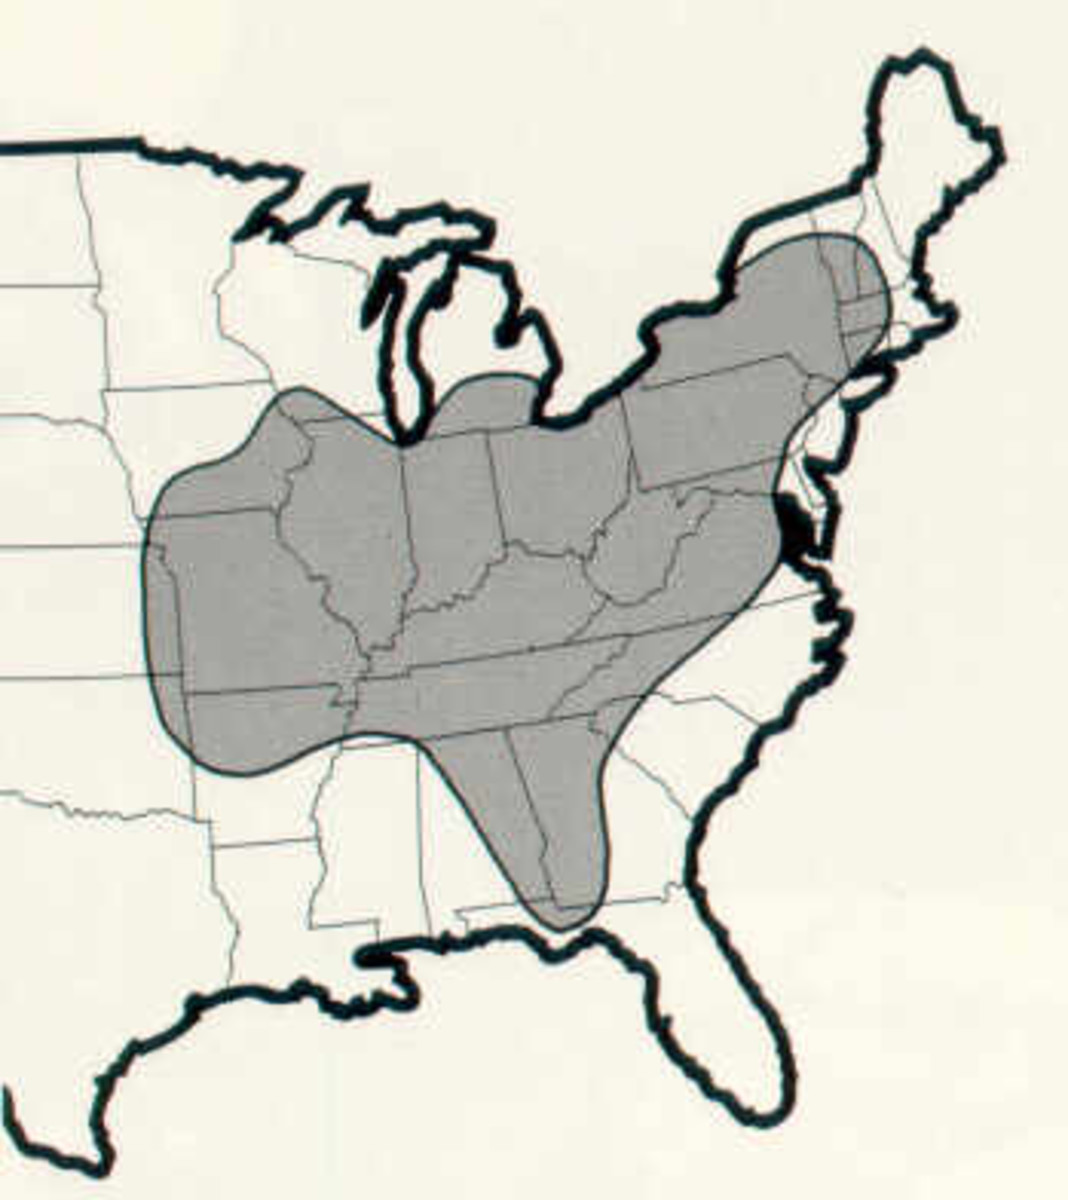 The range of the Indiana bat population.